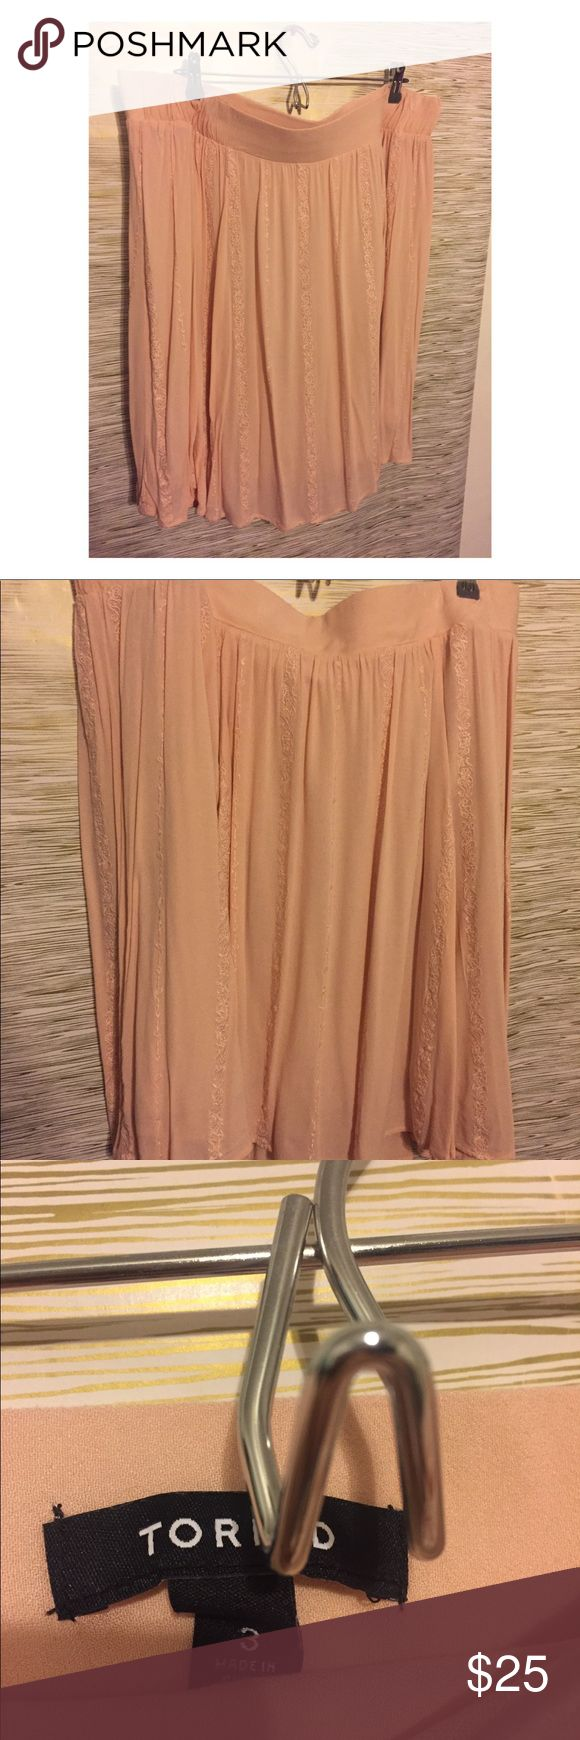 Torrid pink detail skirt Size 3 torrid skirt. Pink. With a cute detail around the skirt. Worn only once. Super comfortable and figure flattering. Perfect for those beautiful sunny days. The skirt band itself is very giving and comfortable. Pet and smoke free home. Please feel ask questions! torrid Skirts